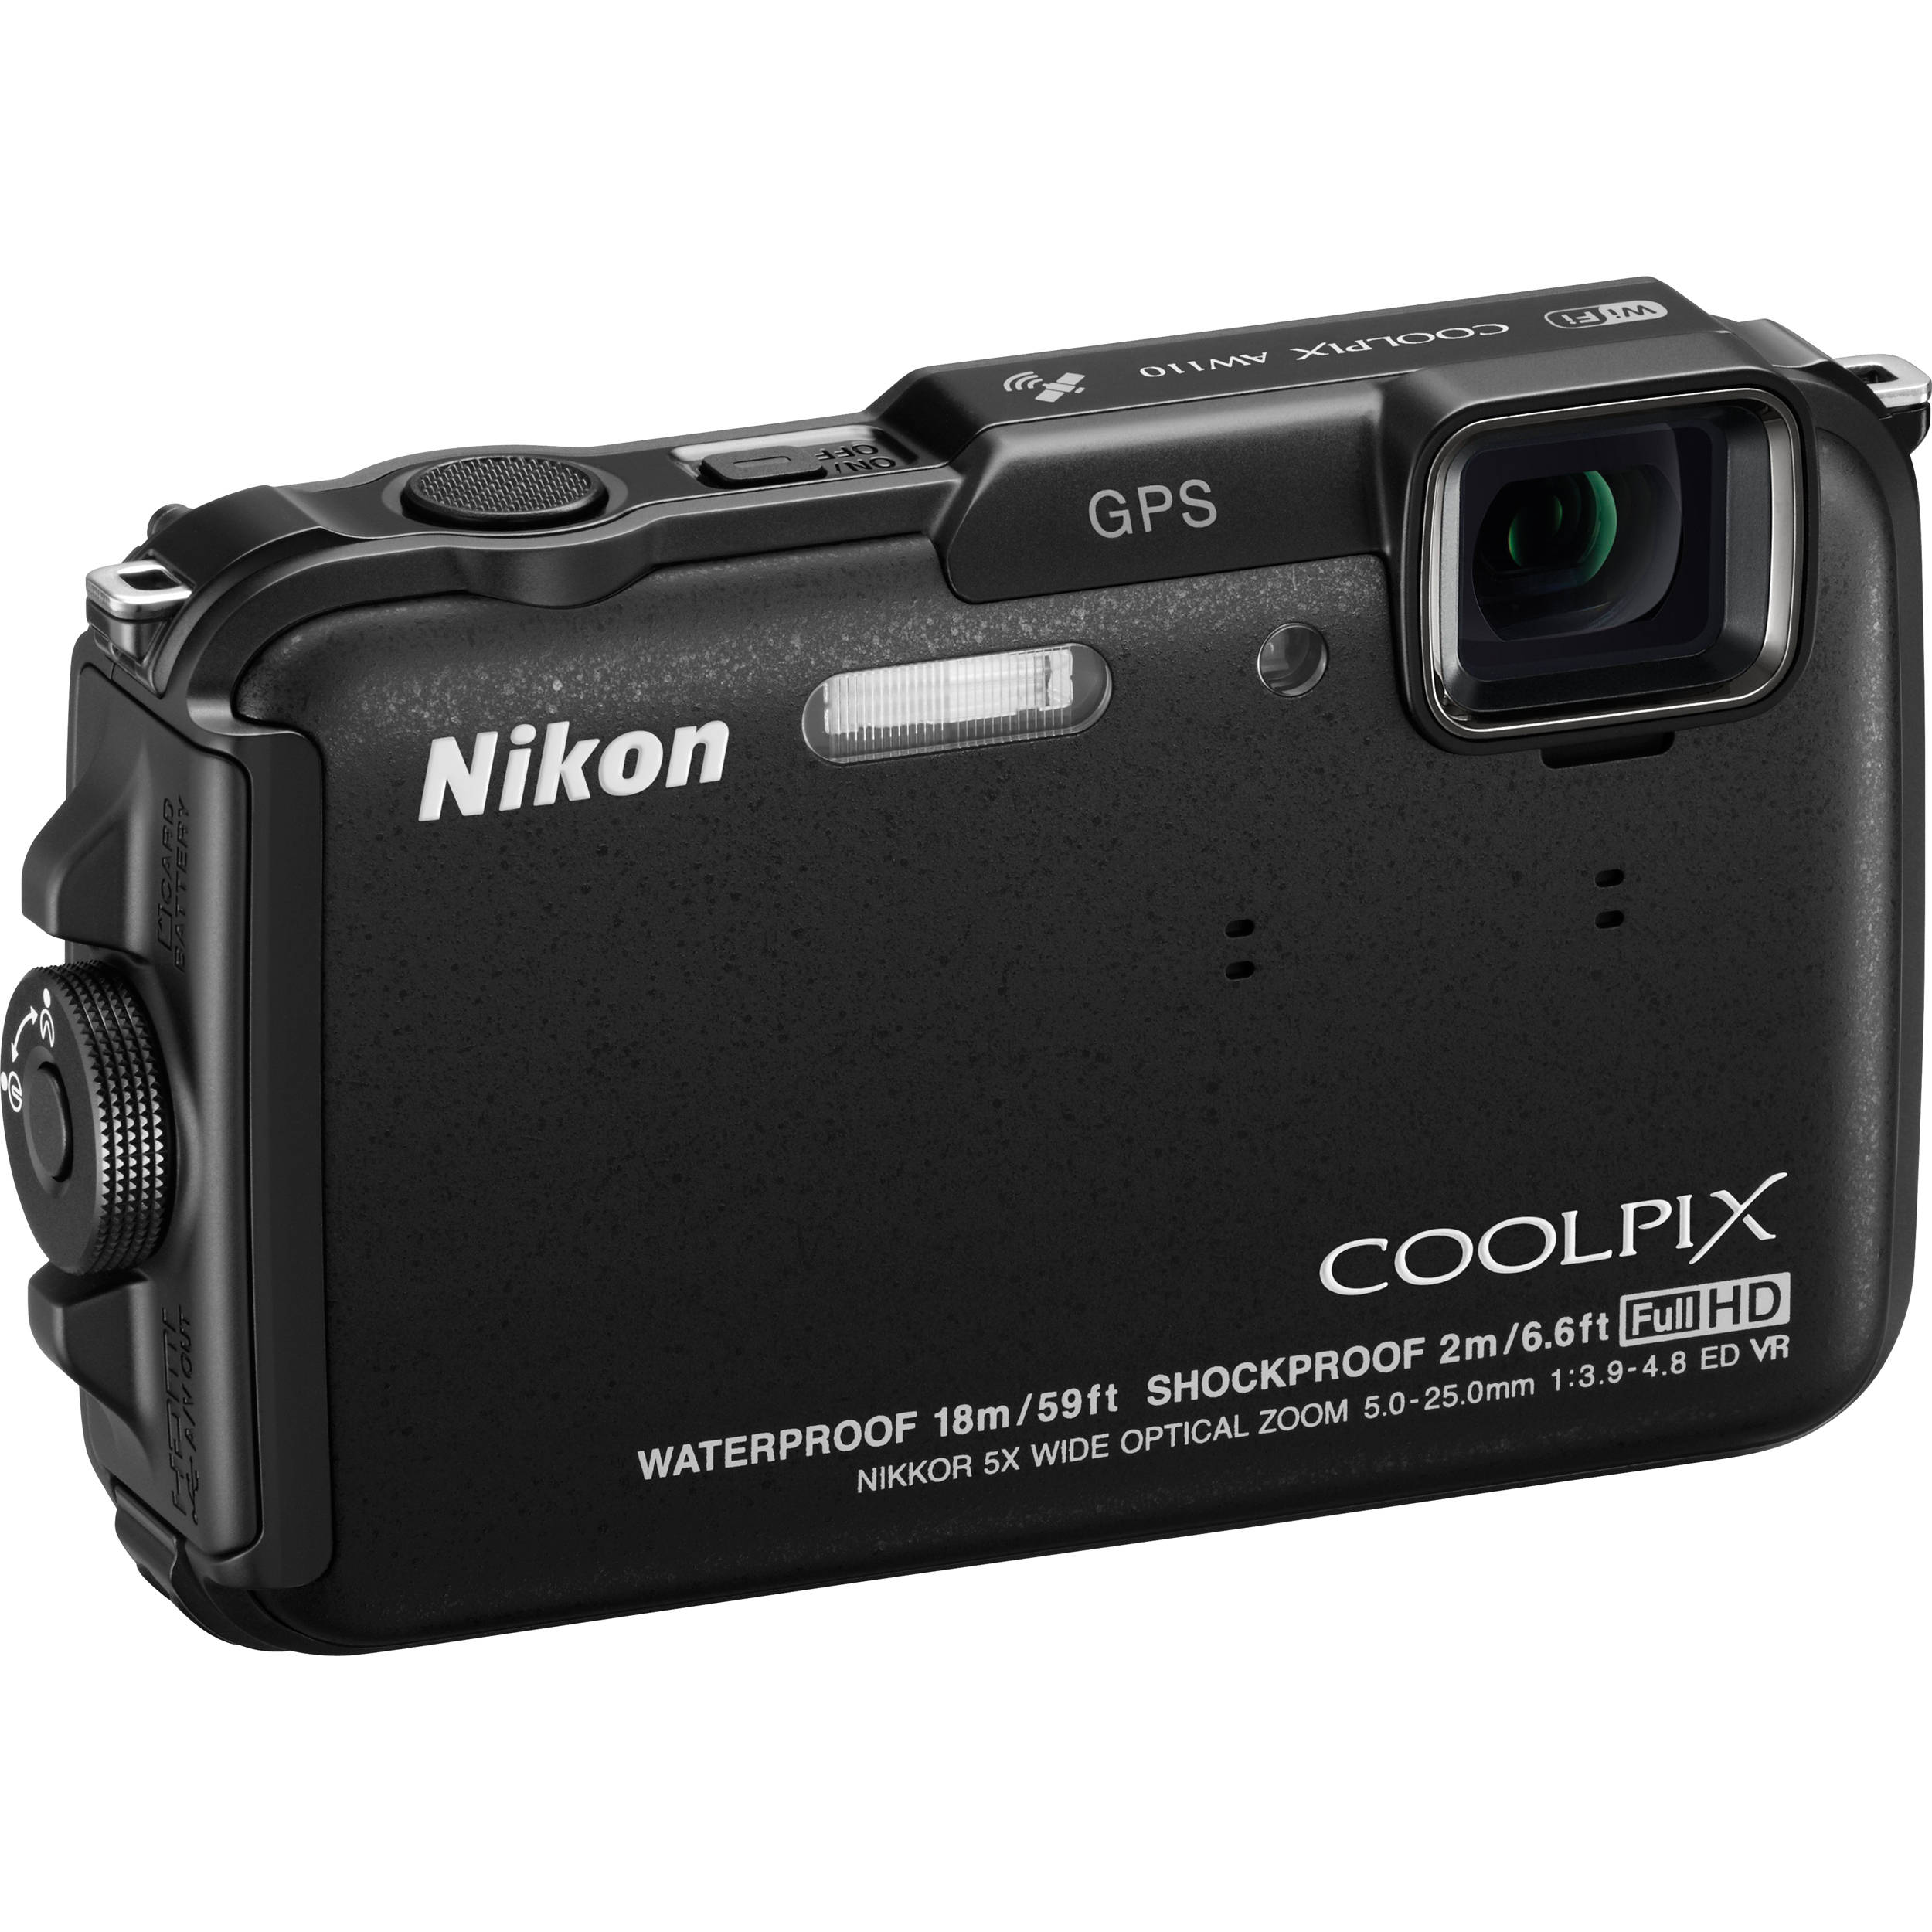 Nikon COOLPIX AW110 Camera Drivers for Windows Download